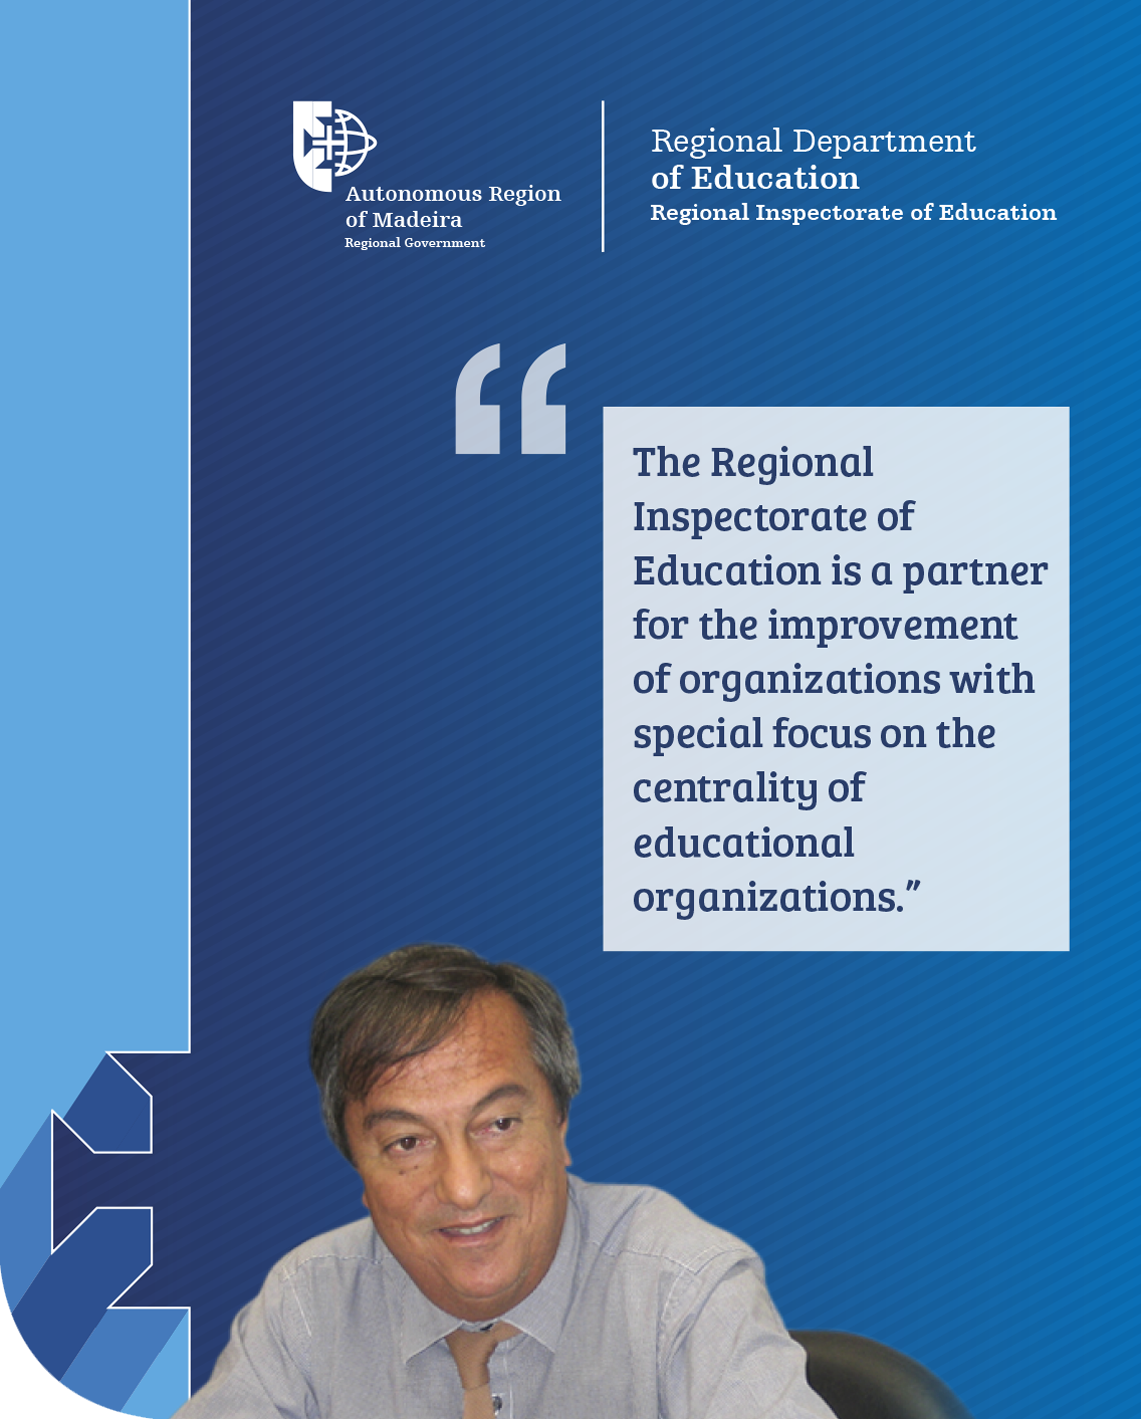 Regional Inspectorate of Education is a partner for the improvement